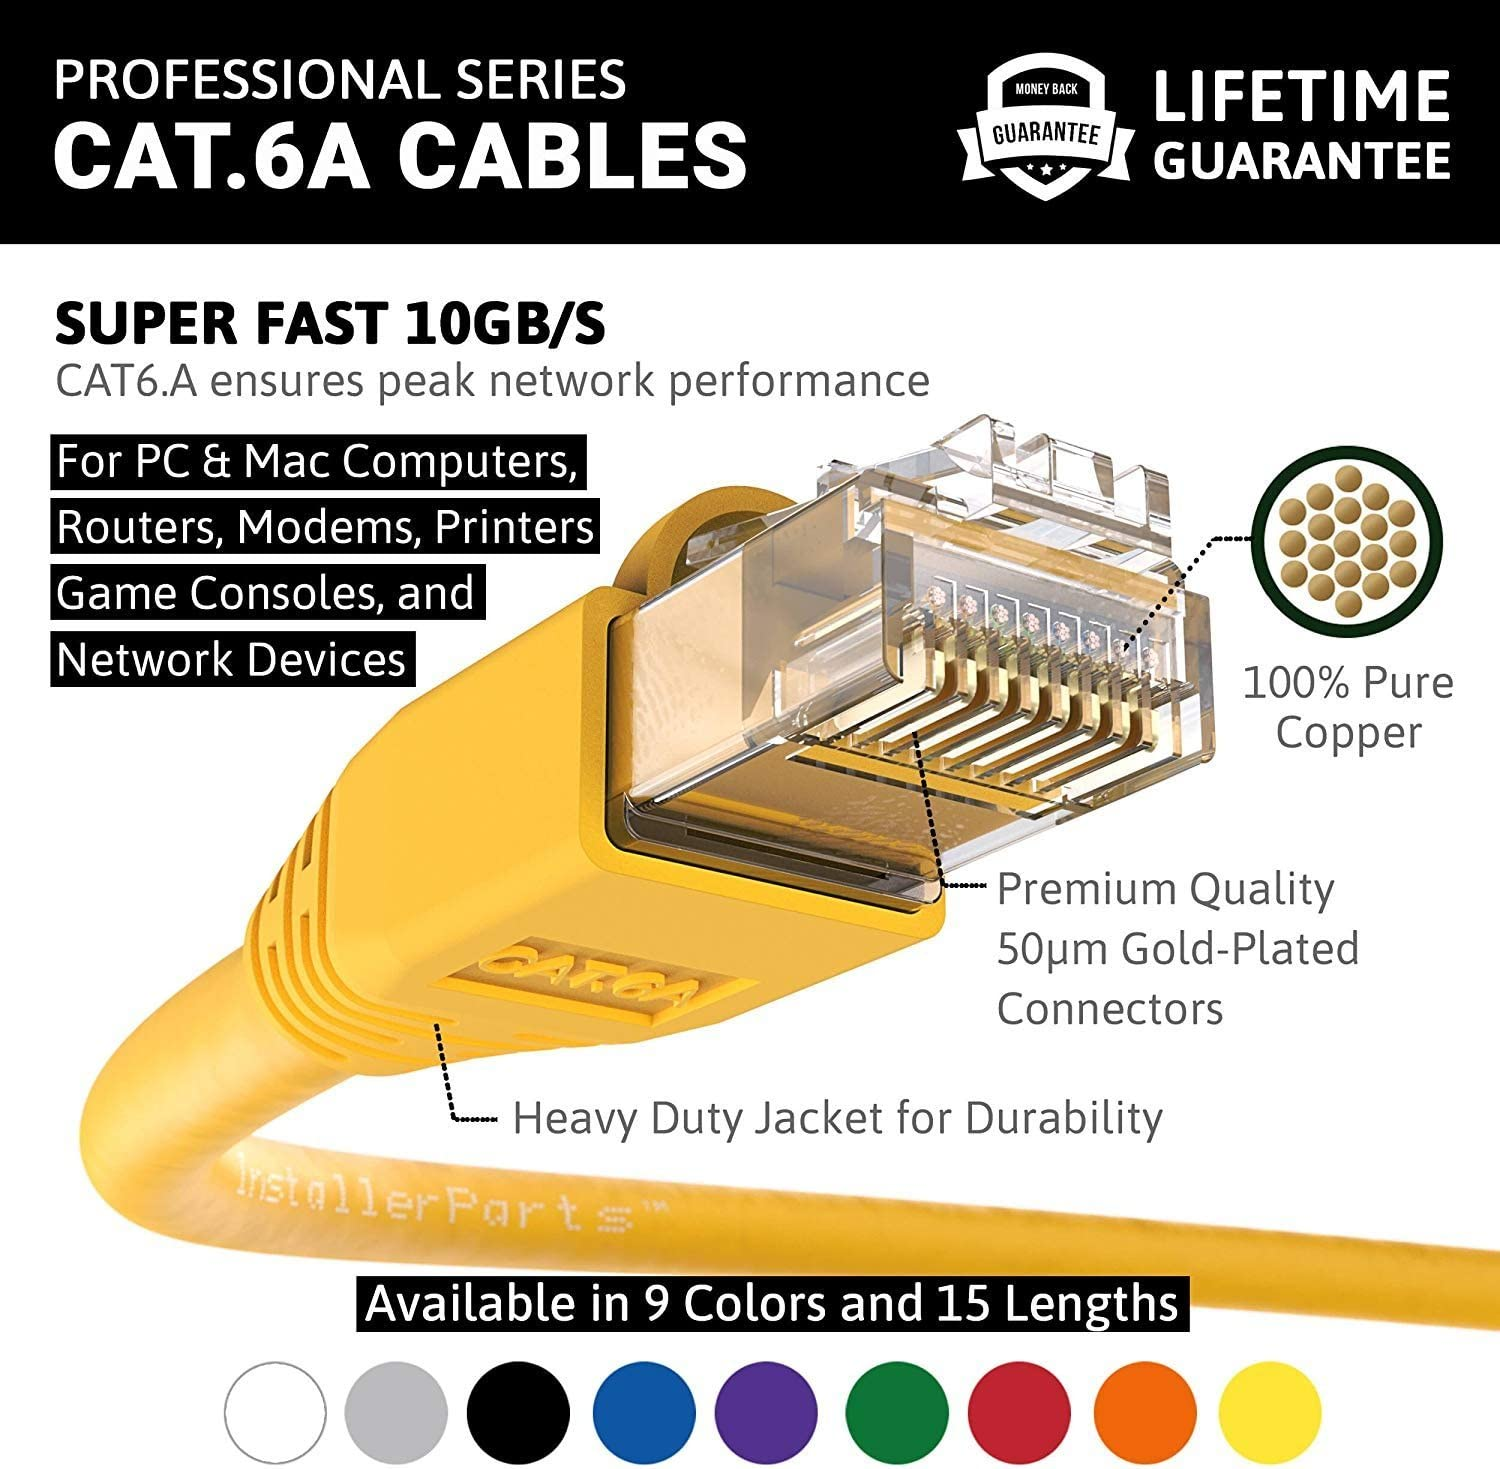 Ethernet Cable CAT6A Cable UTP Booted 1 FT Yellow InstallerParts Professional Series 550MHZ 100 Pack 10Gigabit//Sec Network//High Speed Internet Cable